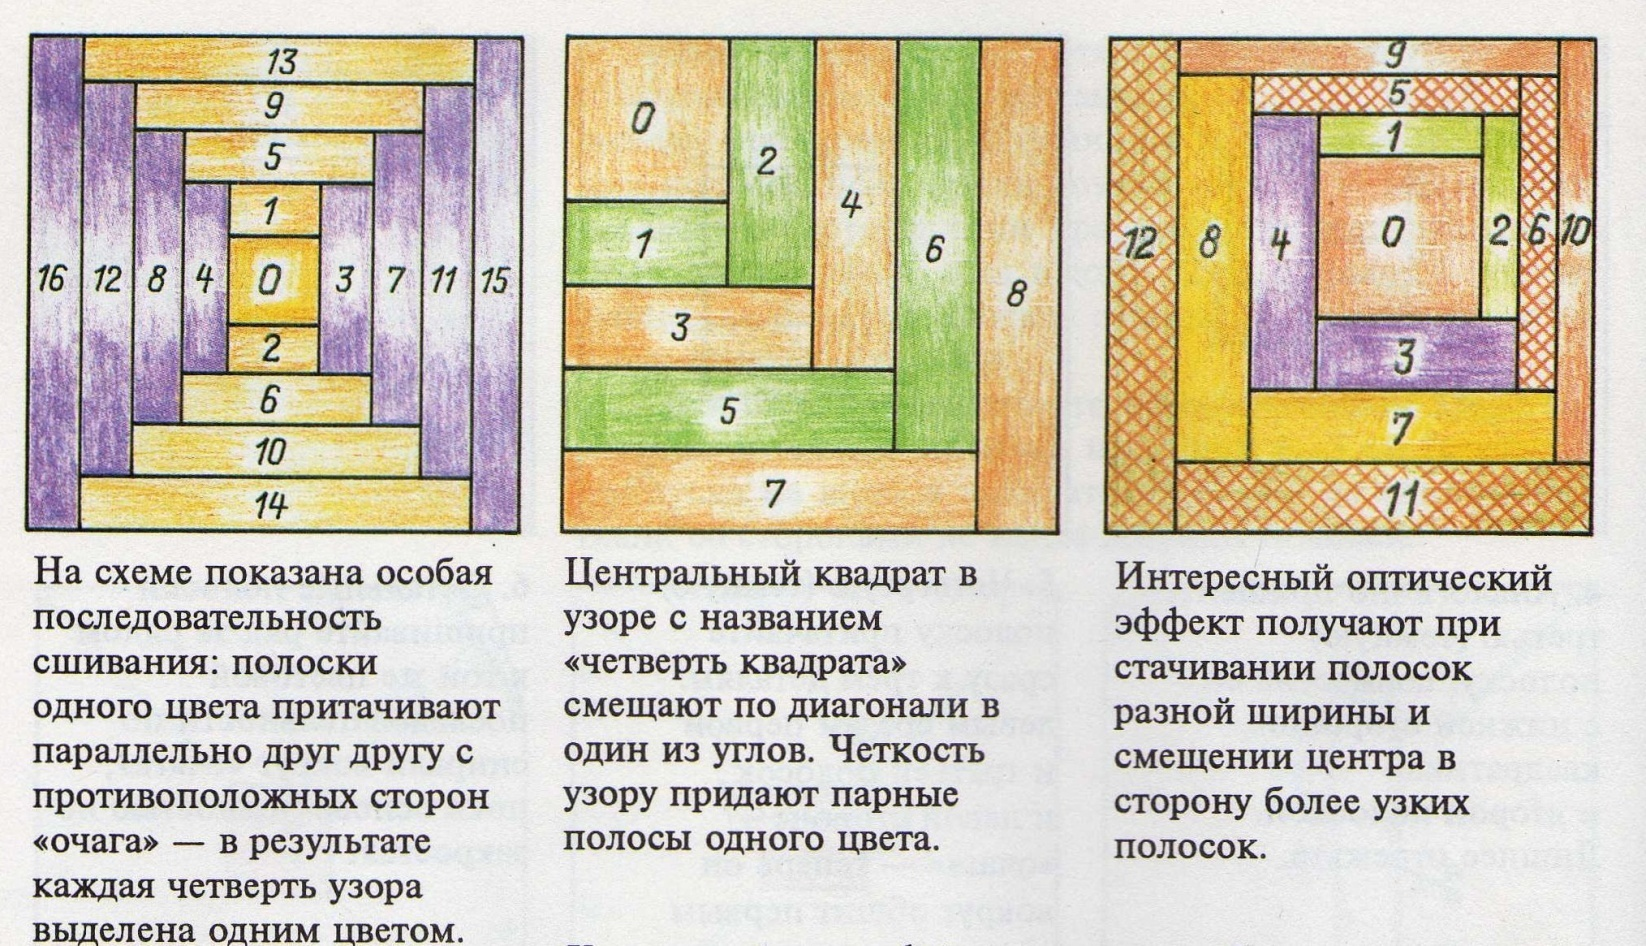 C:\Users\Карина\Pictures\img758.jpg